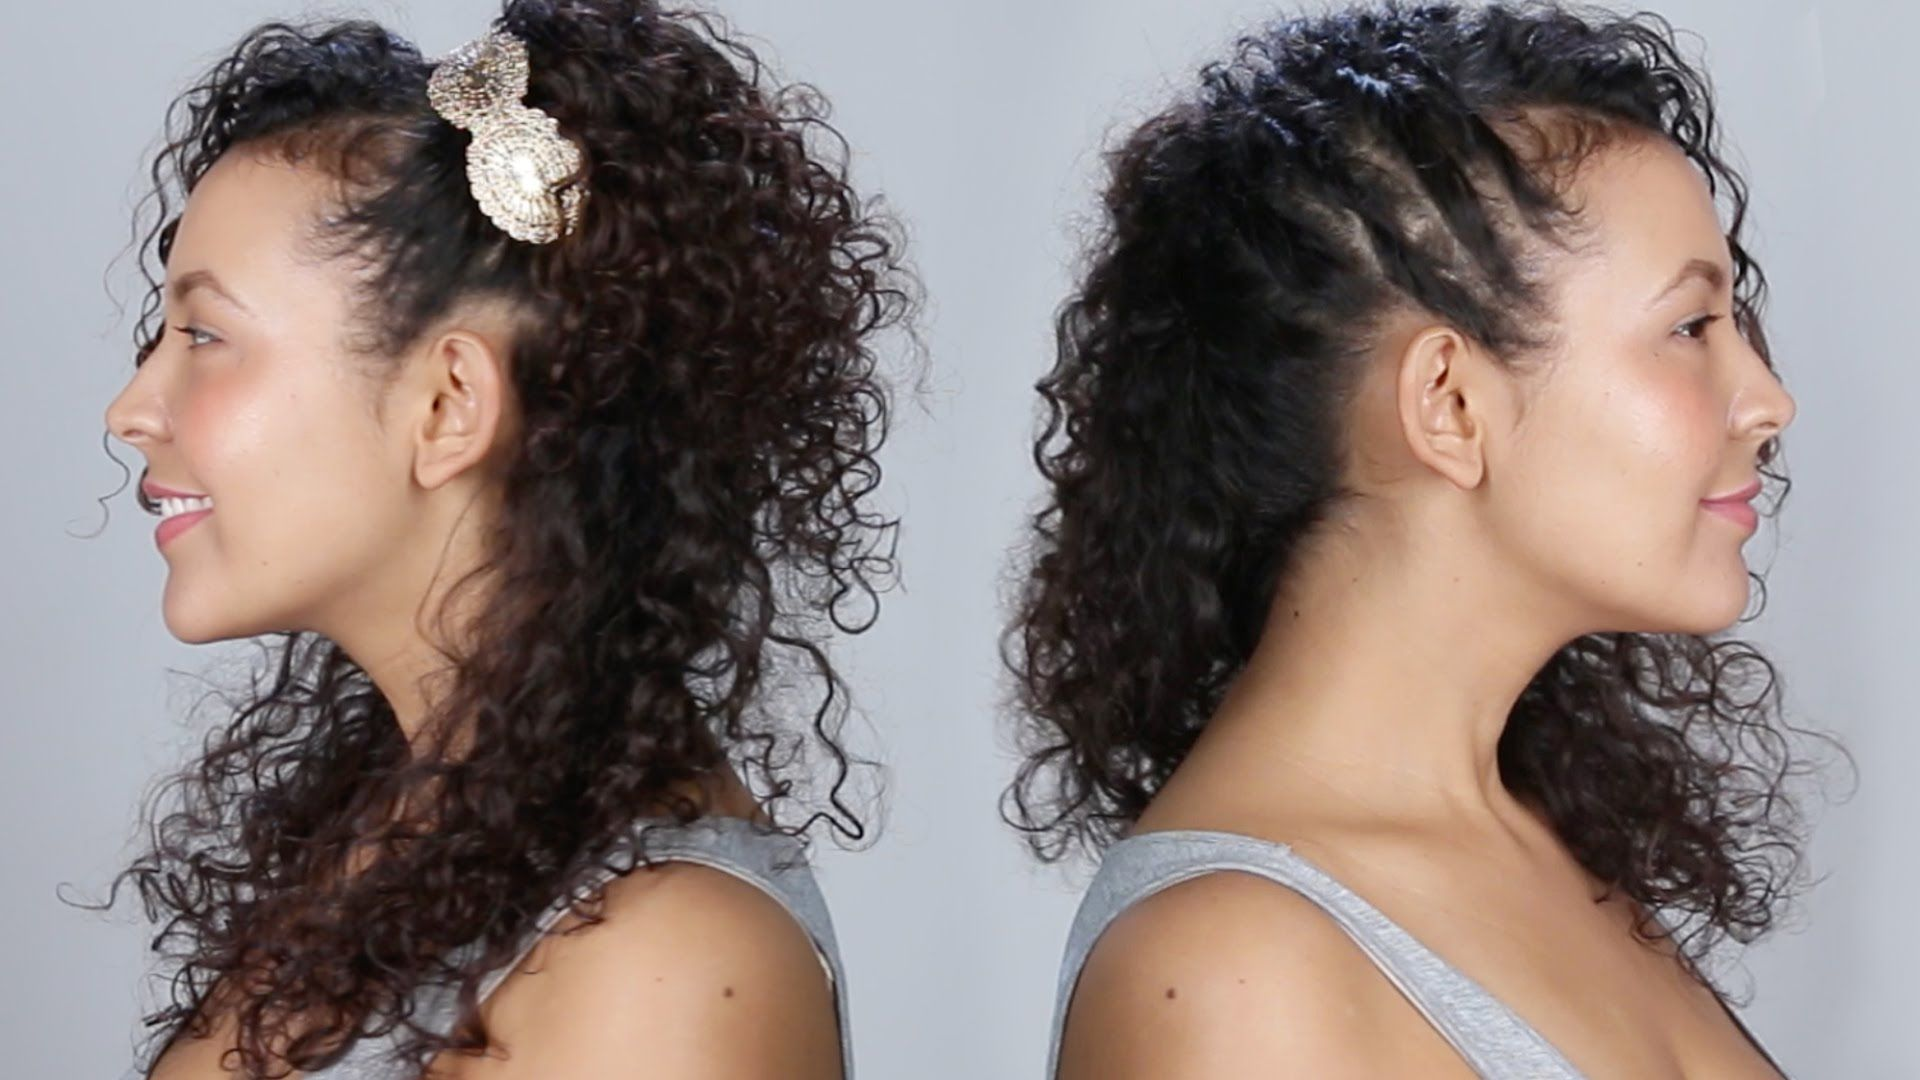 1 Woman 10 Curly Hairstyles